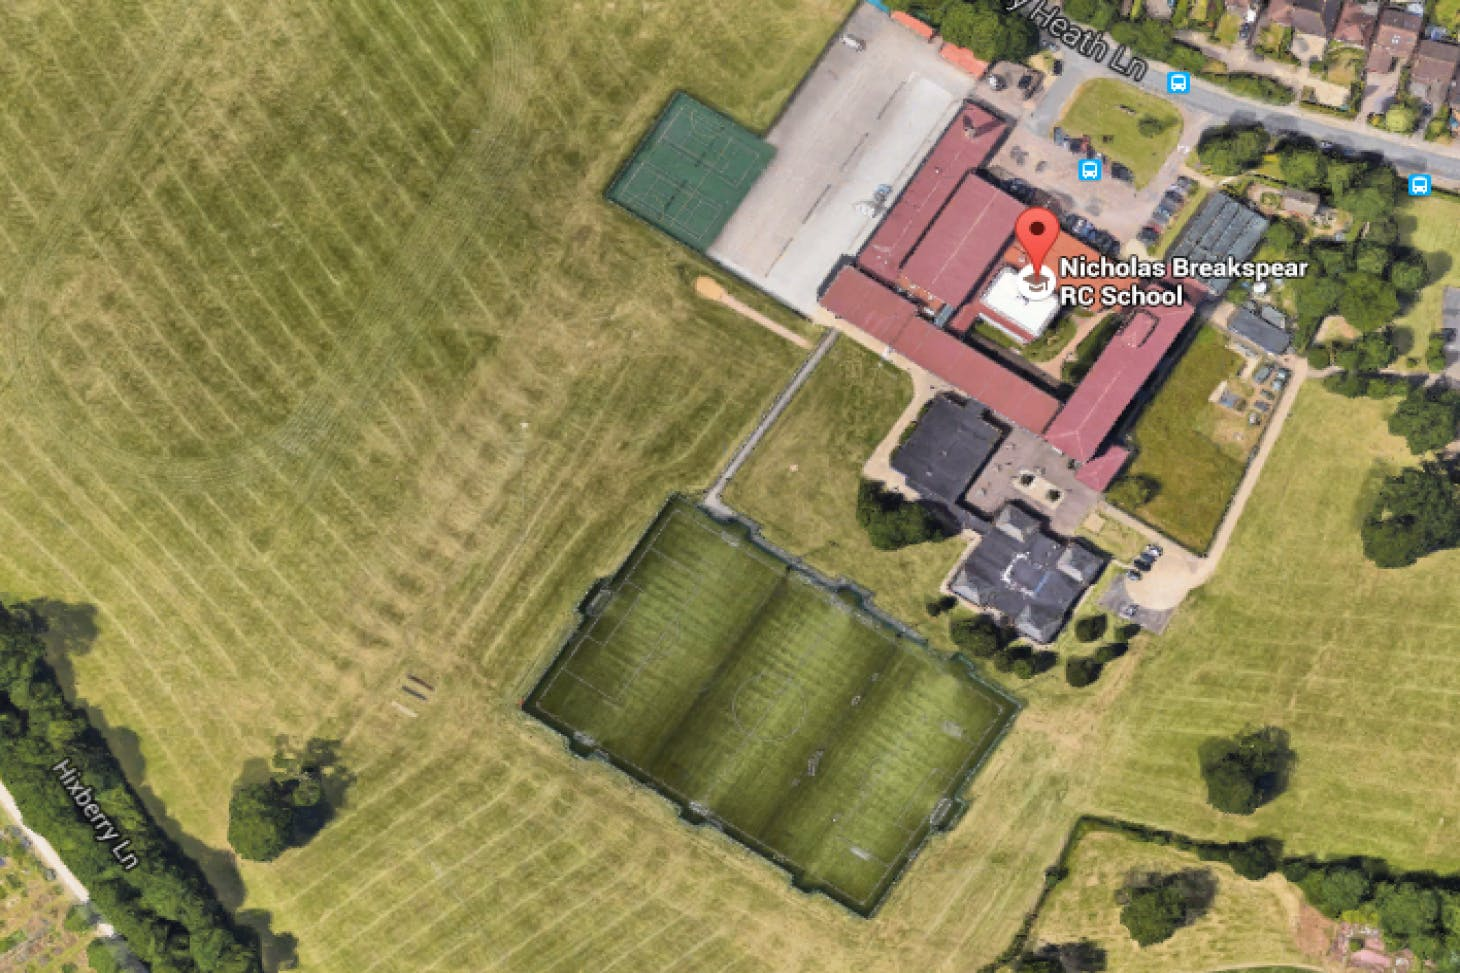 Nicholas Breakspear RC School Outdoor | Hard (macadam) tennis court